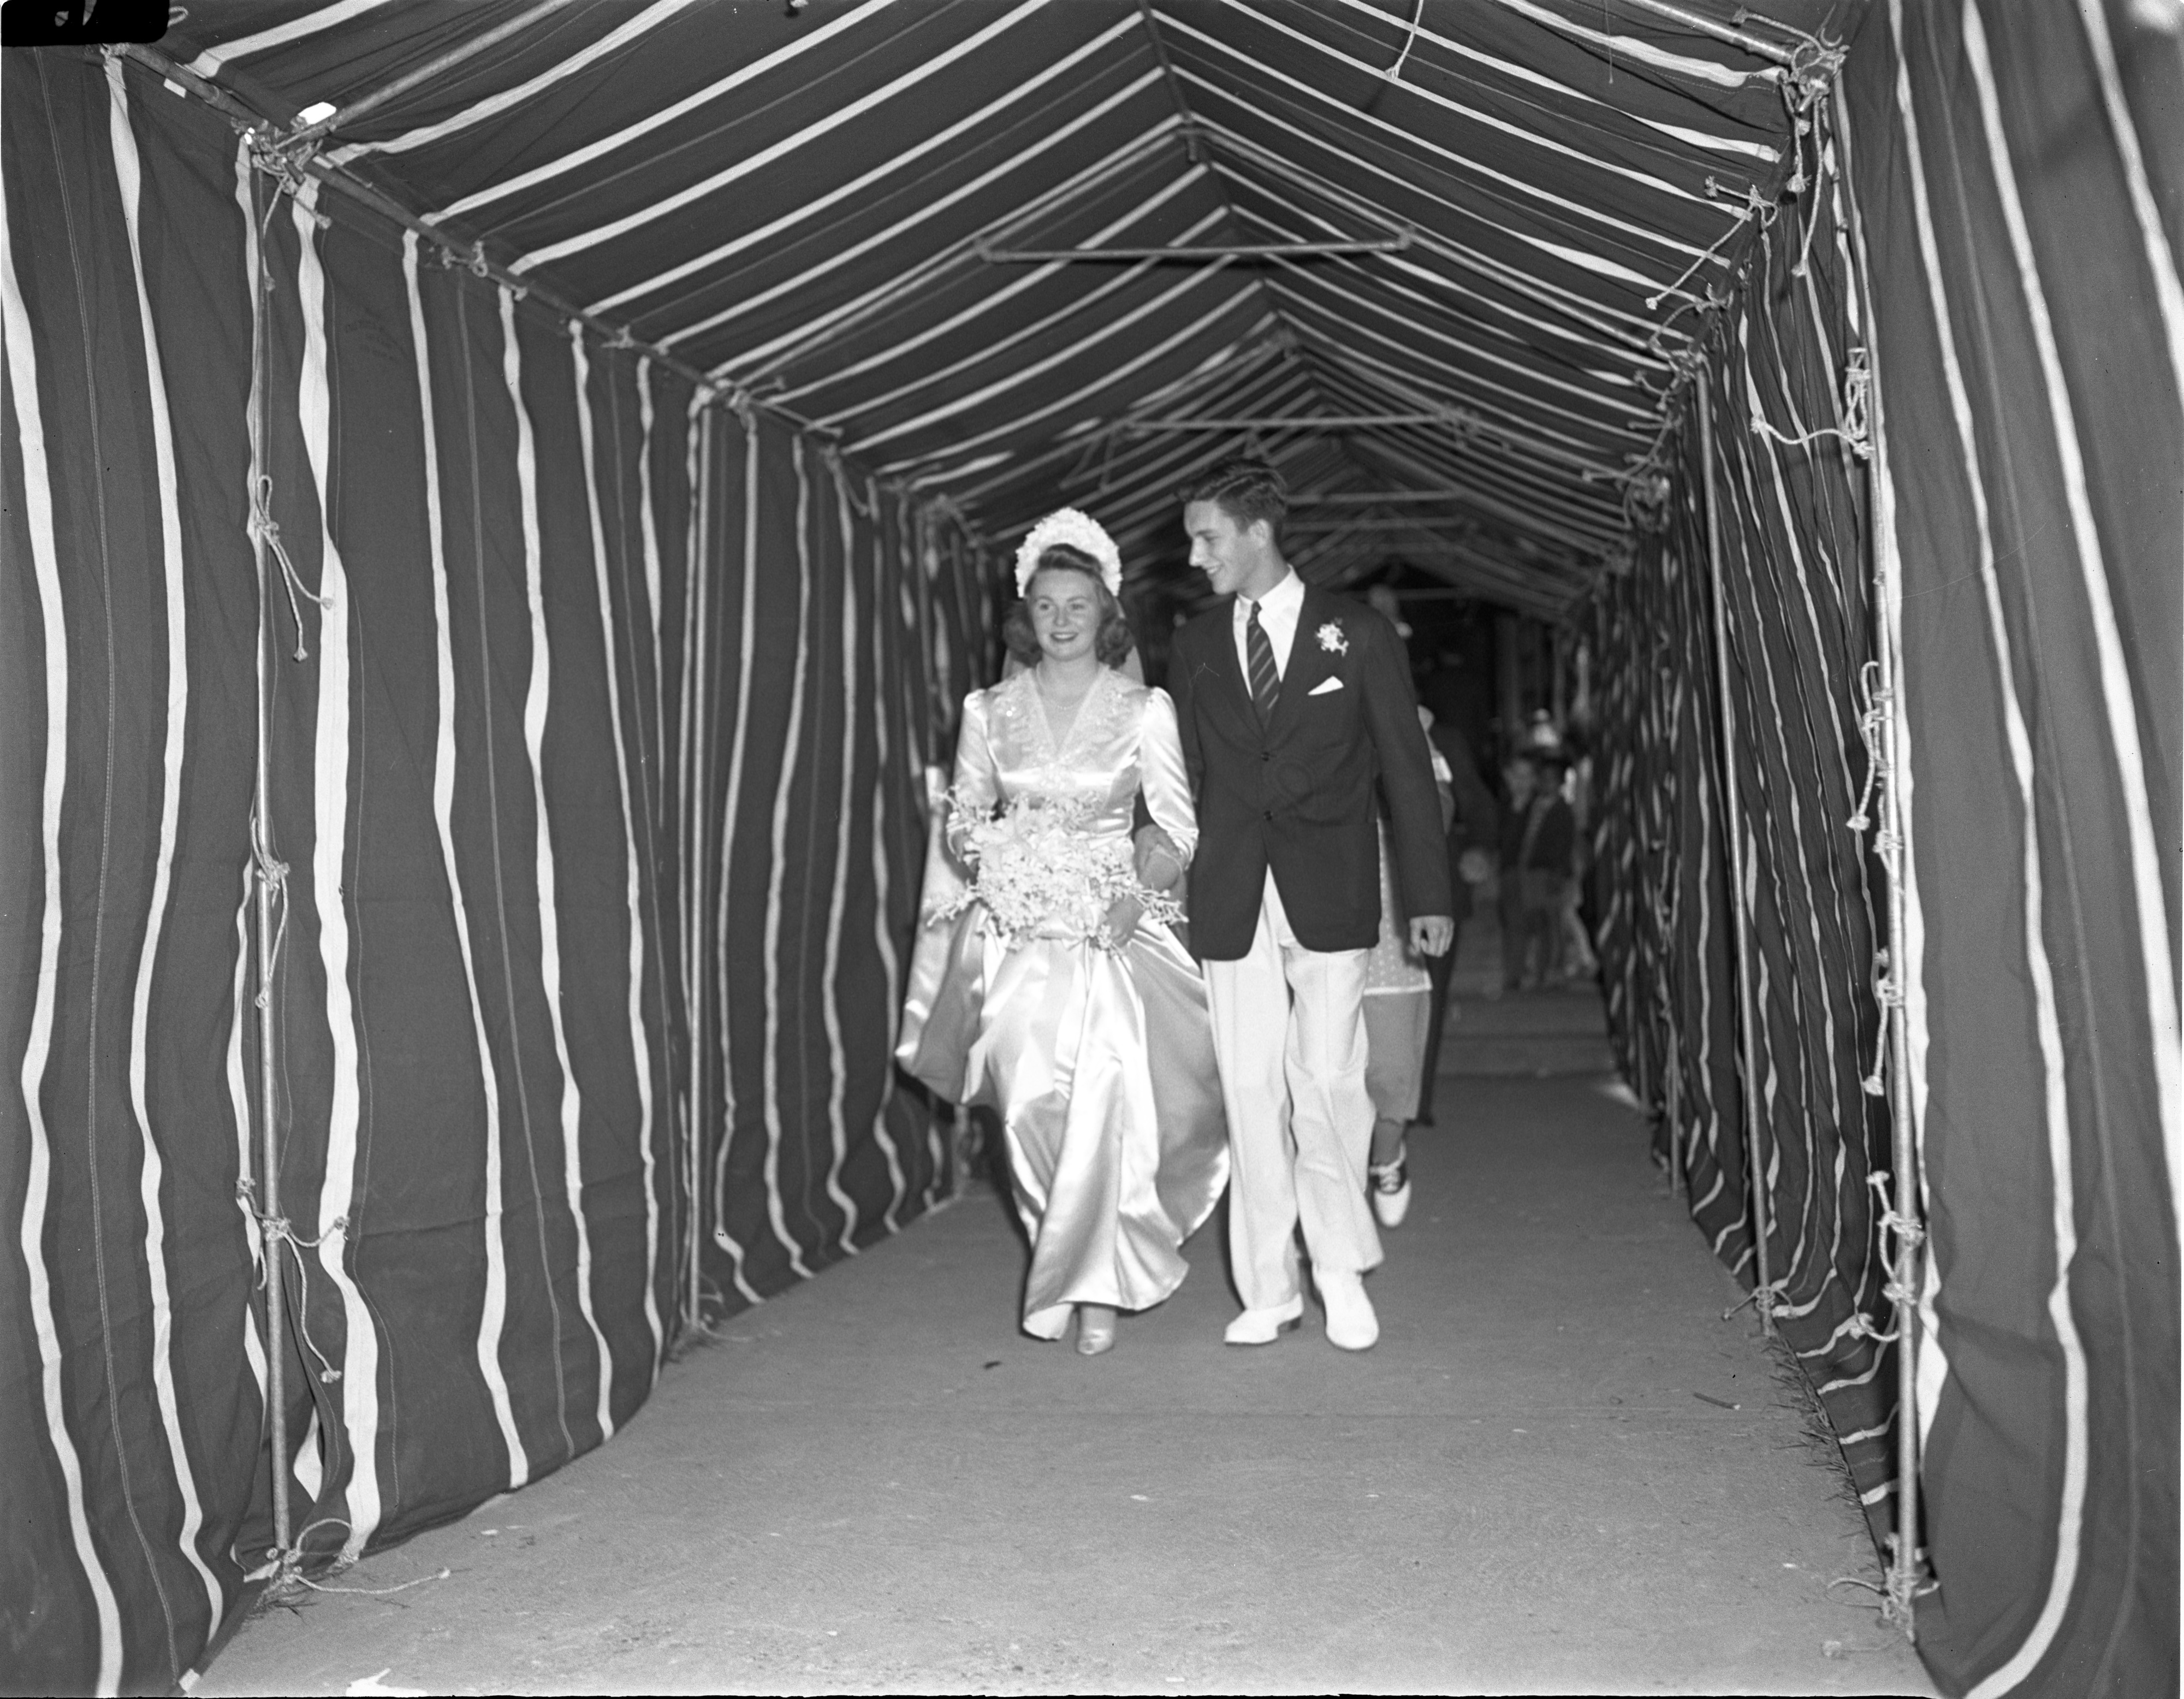 Anita & Tom Peirsol Leave St. Andrew's Church After Their Wedding - May 27, 1942 image